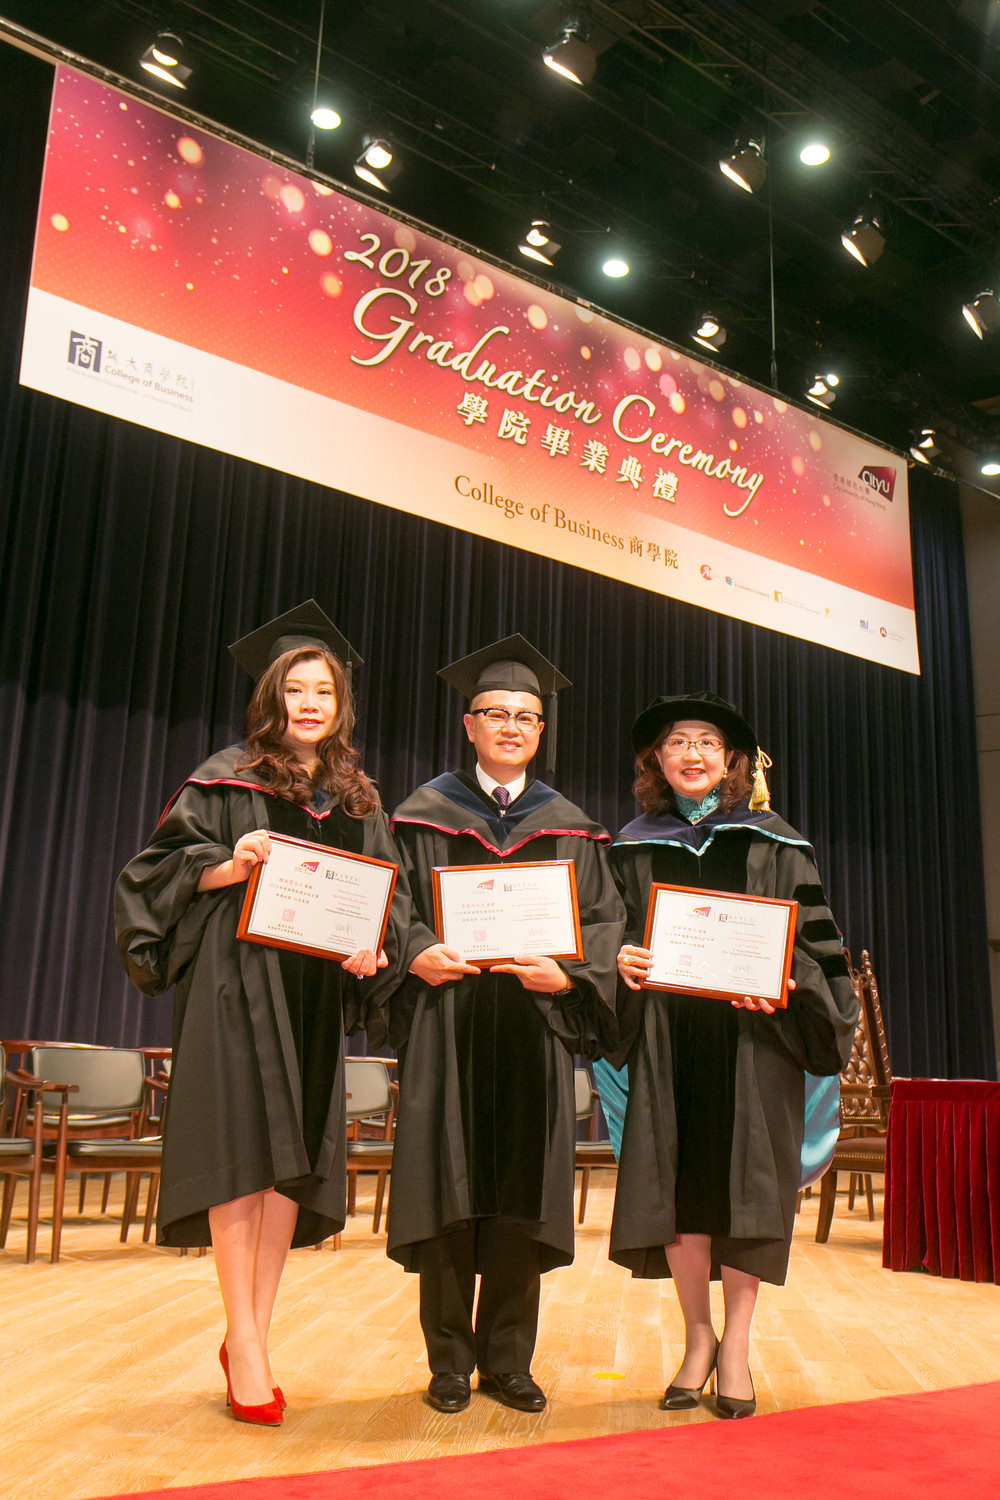 CityU College of Business Distinguished Alumni Awards